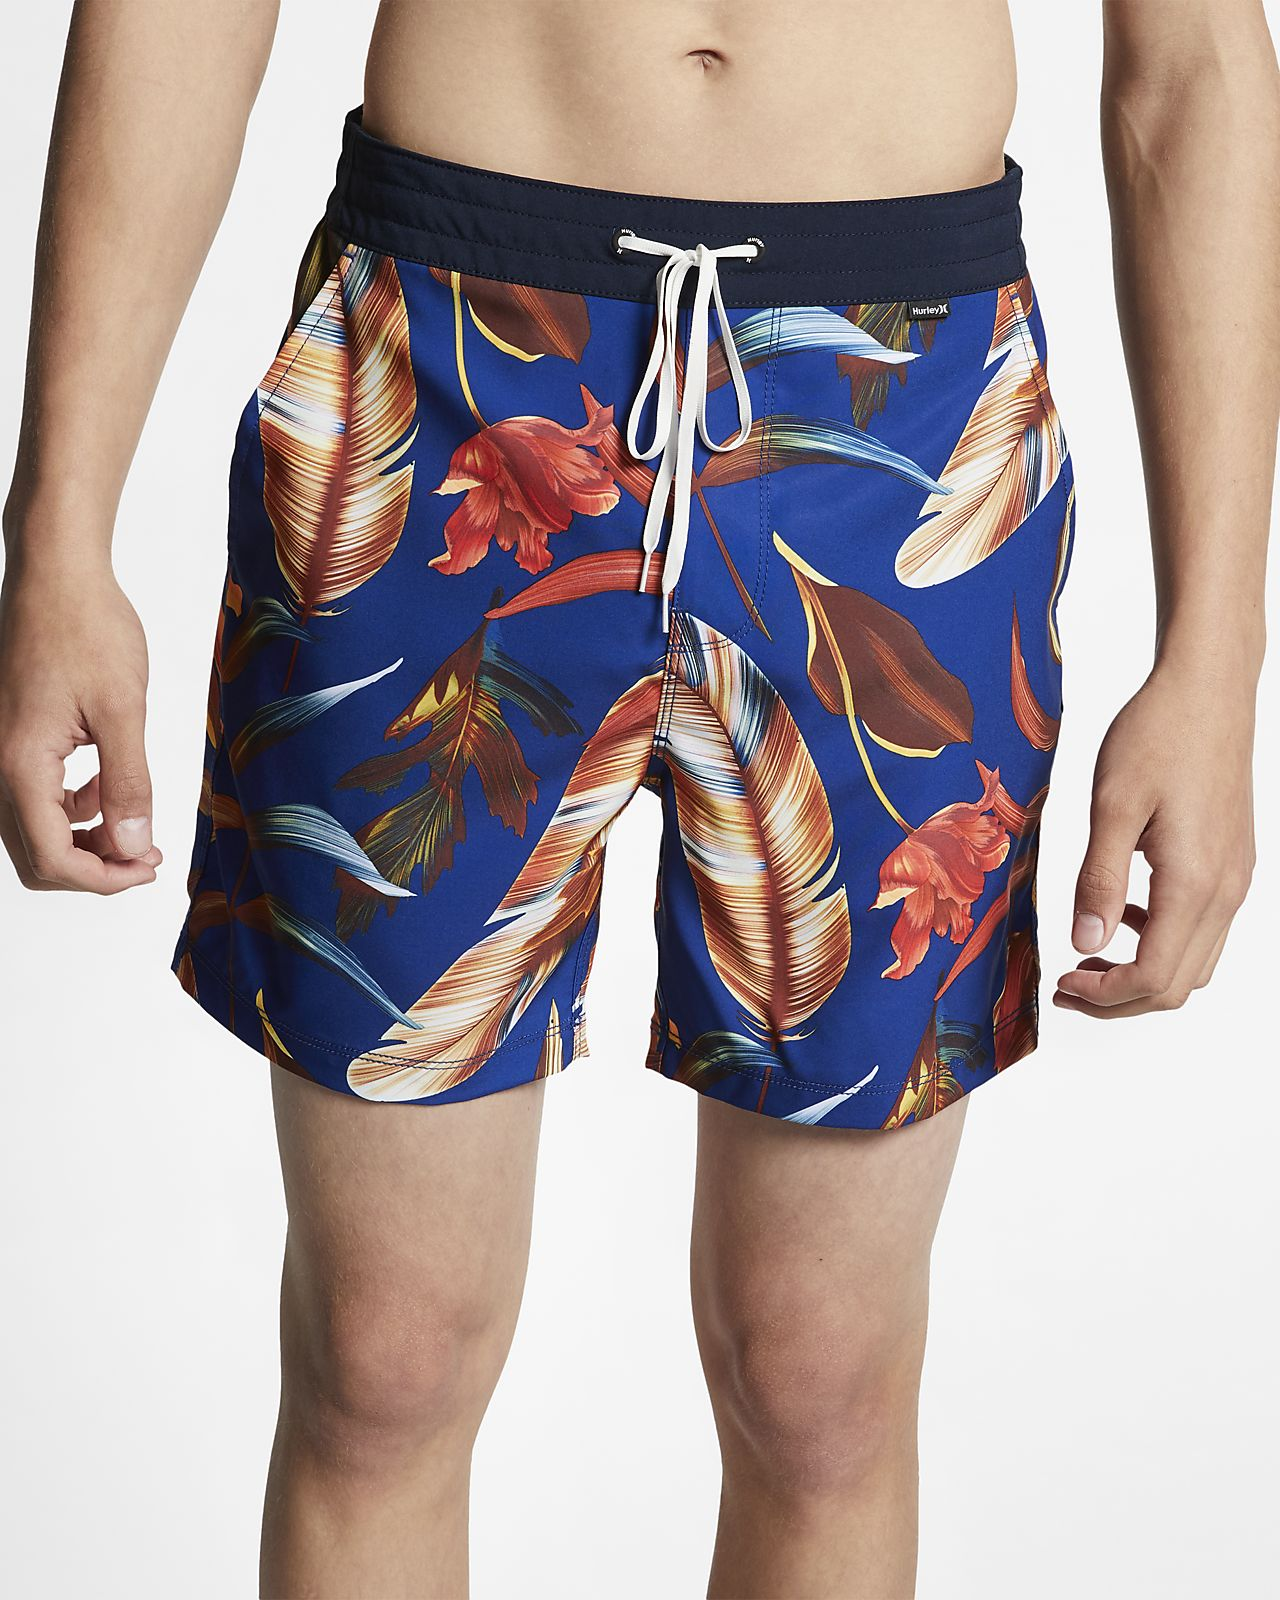 Hurley Fat Cap Volley Men's 43cm (approx.) Boardshorts